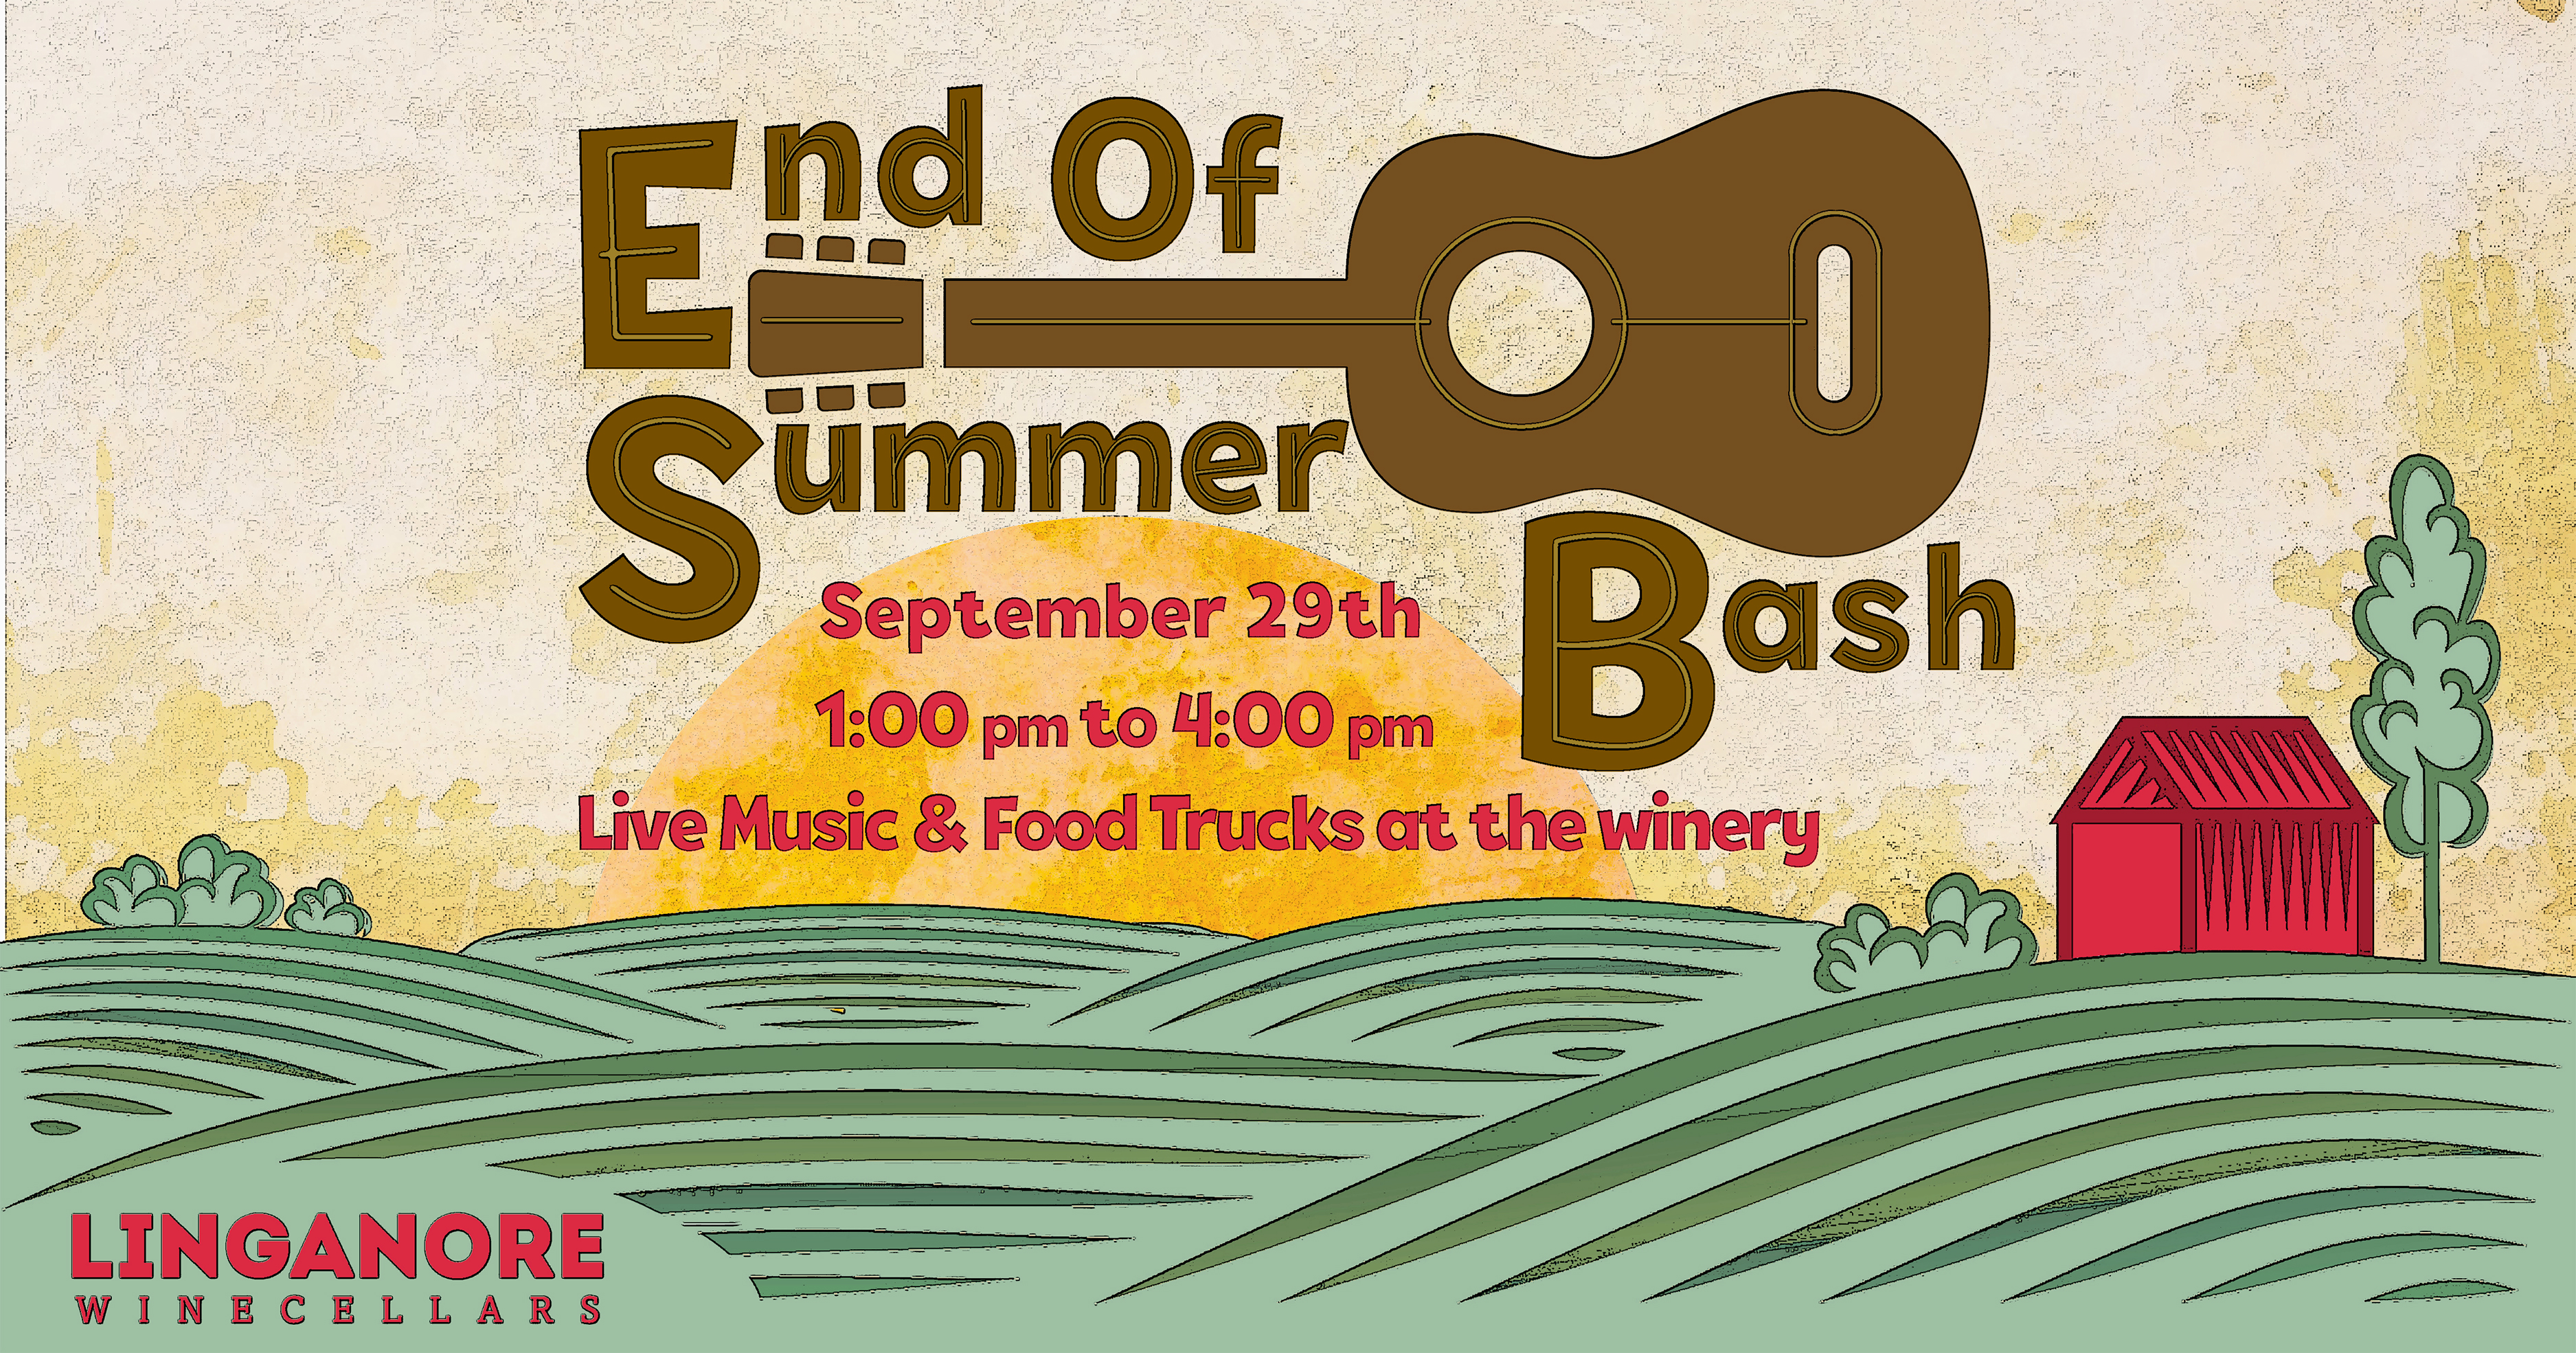 End of summer Bash Sept 29th